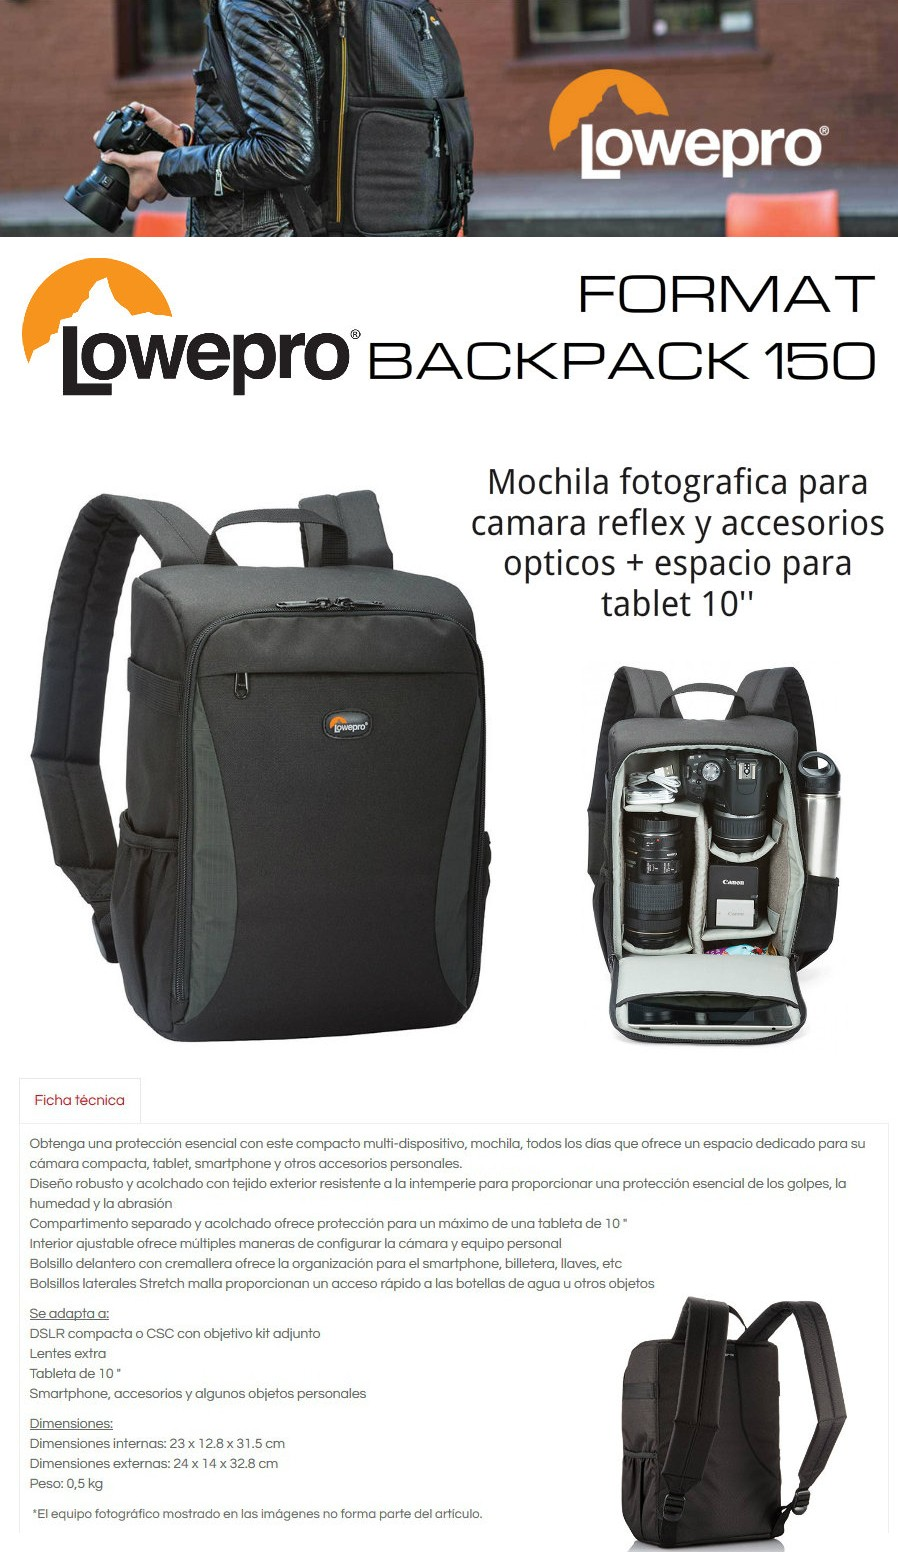 LOWEPRO FORMAT BACKPACK 150 MOCHILA FOTOGRAFICA